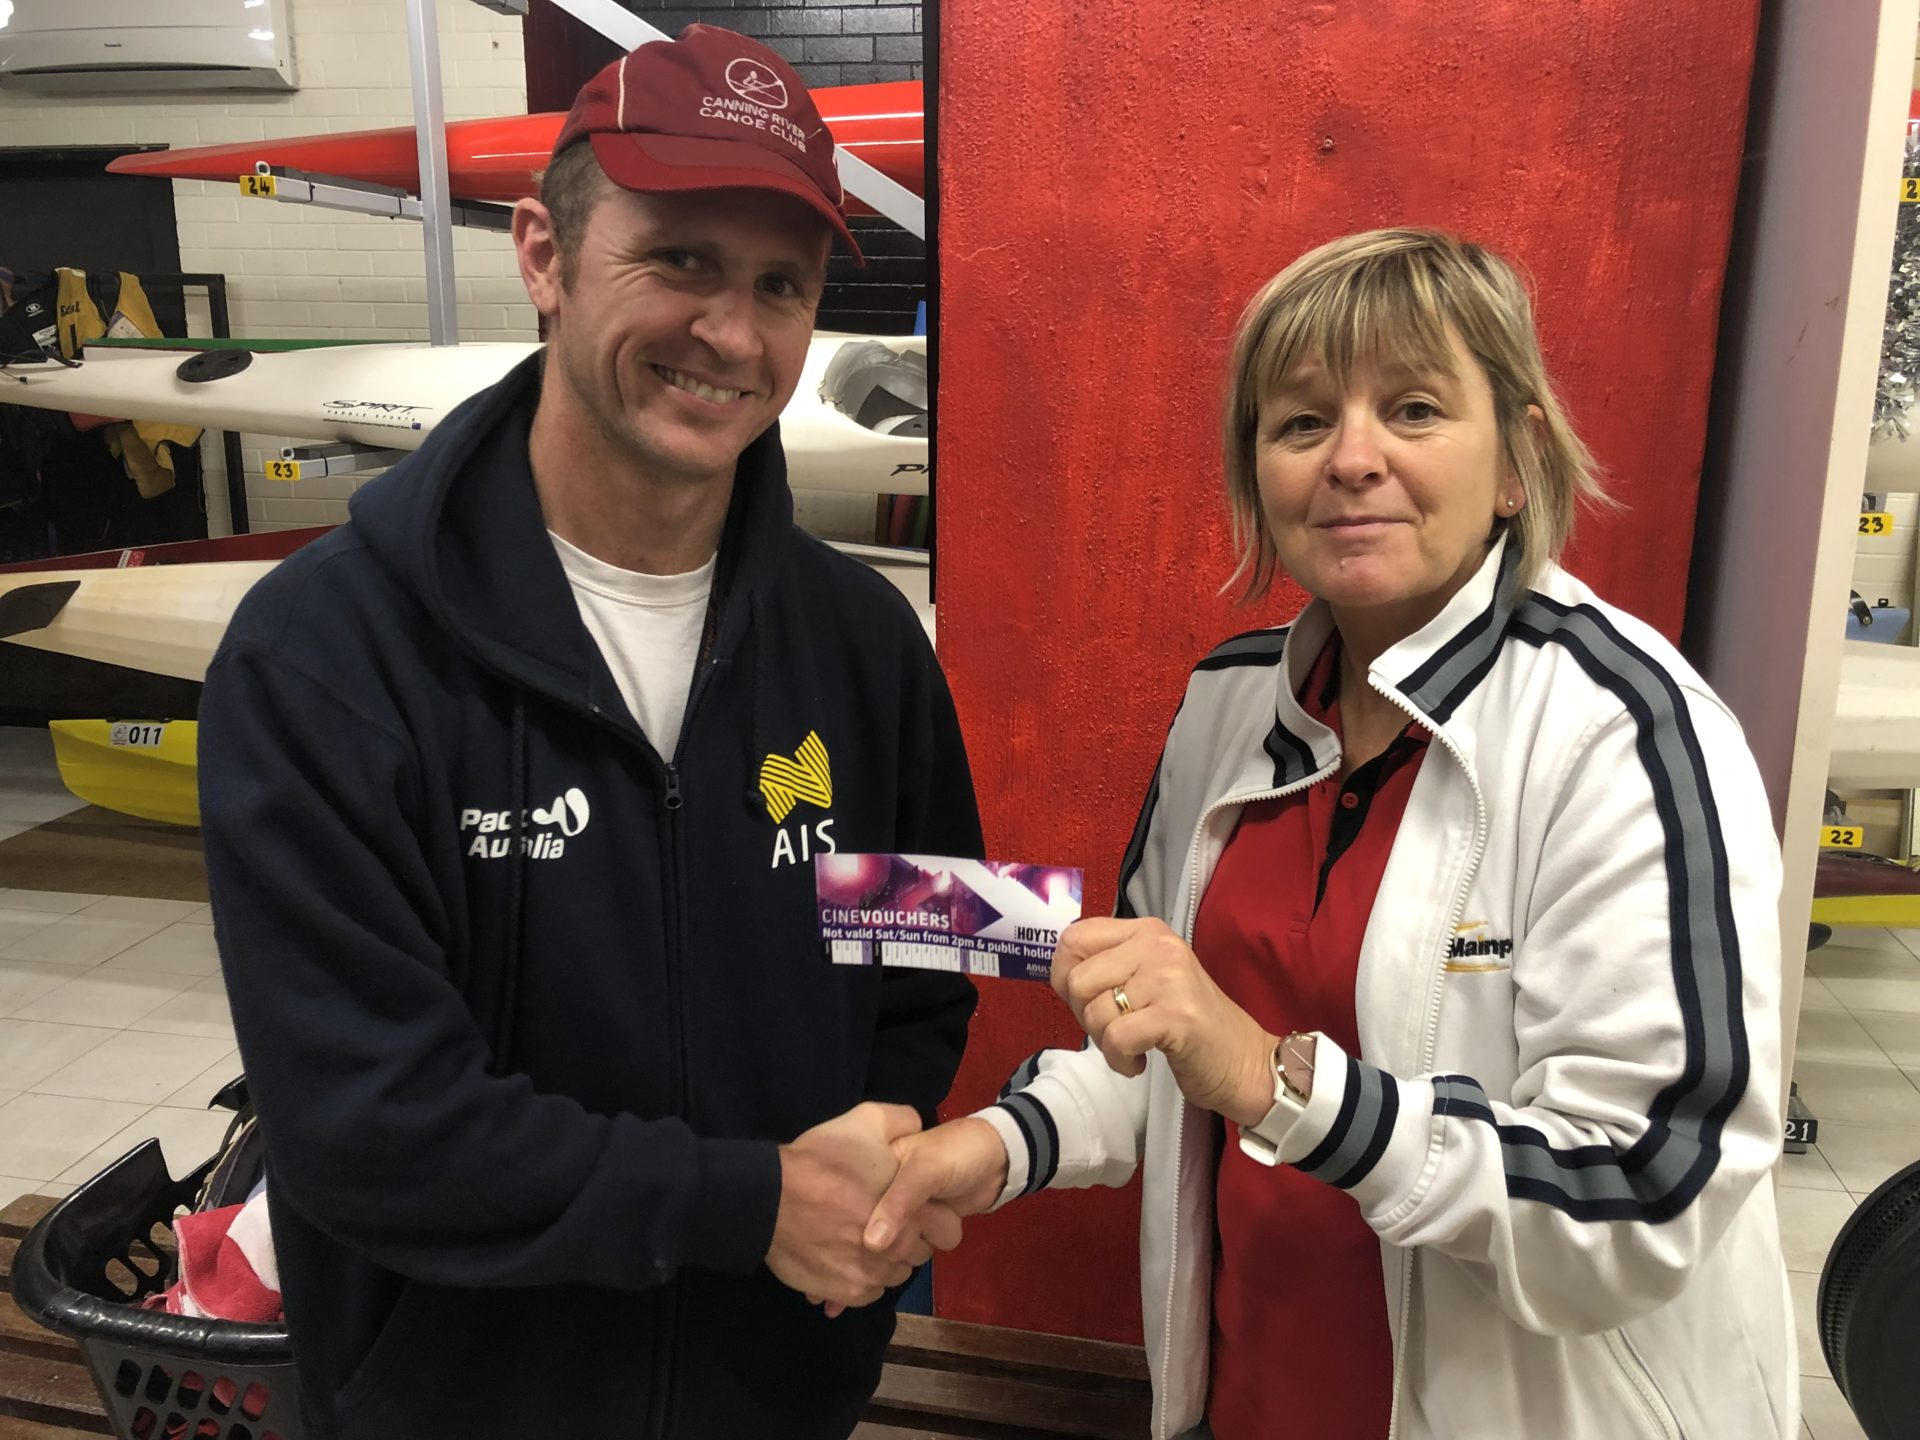 Tuesday 19th November 2019 : Tonight's photo shows club Secretary Judith Thompson presenting Mike Laloli with the winners movie voucher.